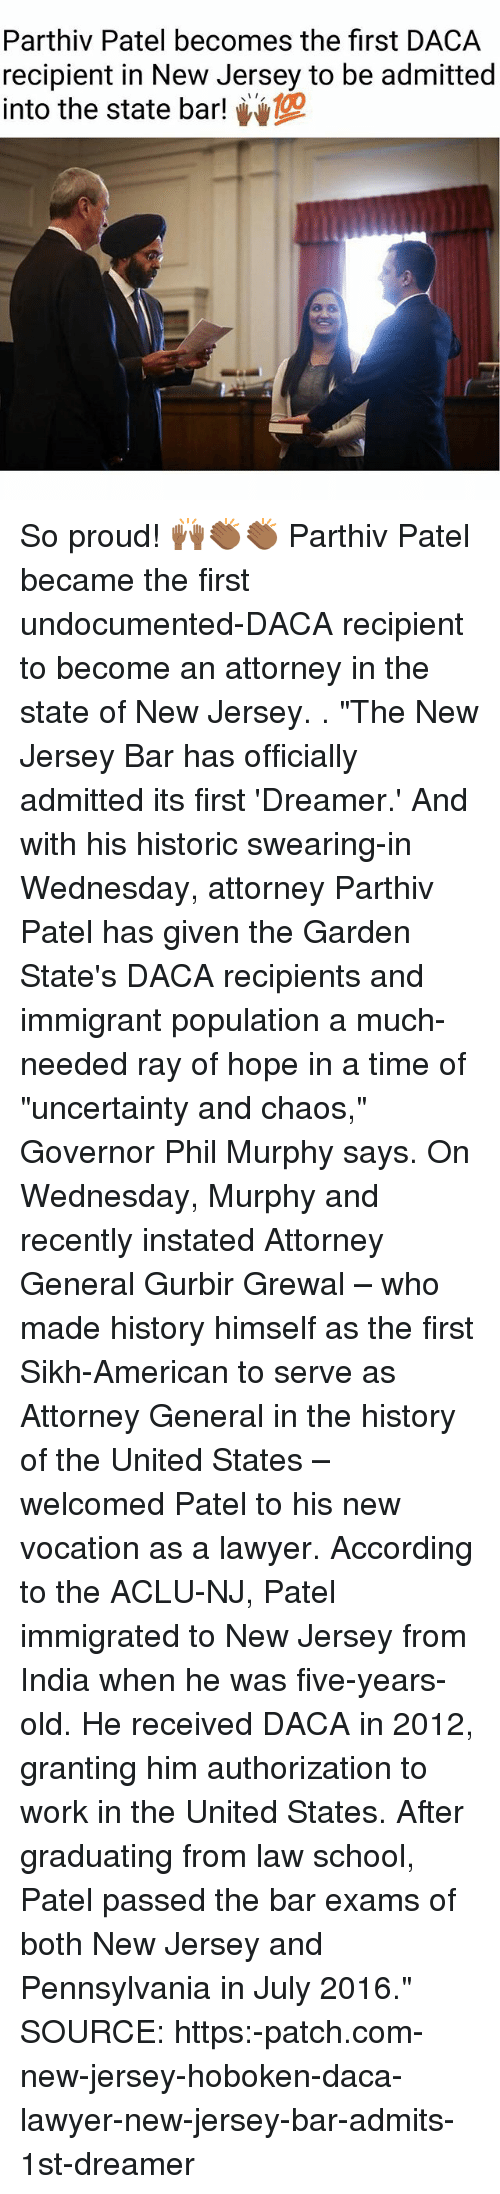 """Aclu: Parthiv Patel becomes the first DACA  recipient in New Jersey to be admitted  into the state bar! So proud! 🙌🏾👏🏾👏🏾 Parthiv Patel became the first undocumented-DACA recipient to become an attorney in the state of New Jersey. . """"The New Jersey Bar has officially admitted its first 'Dreamer.' And with his historic swearing-in Wednesday, attorney Parthiv Patel has given the Garden State's DACA recipients and immigrant population a much-needed ray of hope in a time of """"uncertainty and chaos,"""" Governor Phil Murphy says. On Wednesday, Murphy and recently instated Attorney General Gurbir Grewal – who made history himself as the first Sikh-American to serve as Attorney General in the history of the United States – welcomed Patel to his new vocation as a lawyer. According to the ACLU-NJ, Patel immigrated to New Jersey from India when he was five-years-old. He received DACA in 2012, granting him authorization to work in the United States. After graduating from law school, Patel passed the bar exams of both New Jersey and Pennsylvania in July 2016."""" SOURCE: https:-patch.com-new-jersey-hoboken-daca-lawyer-new-jersey-bar-admits-1st-dreamer"""